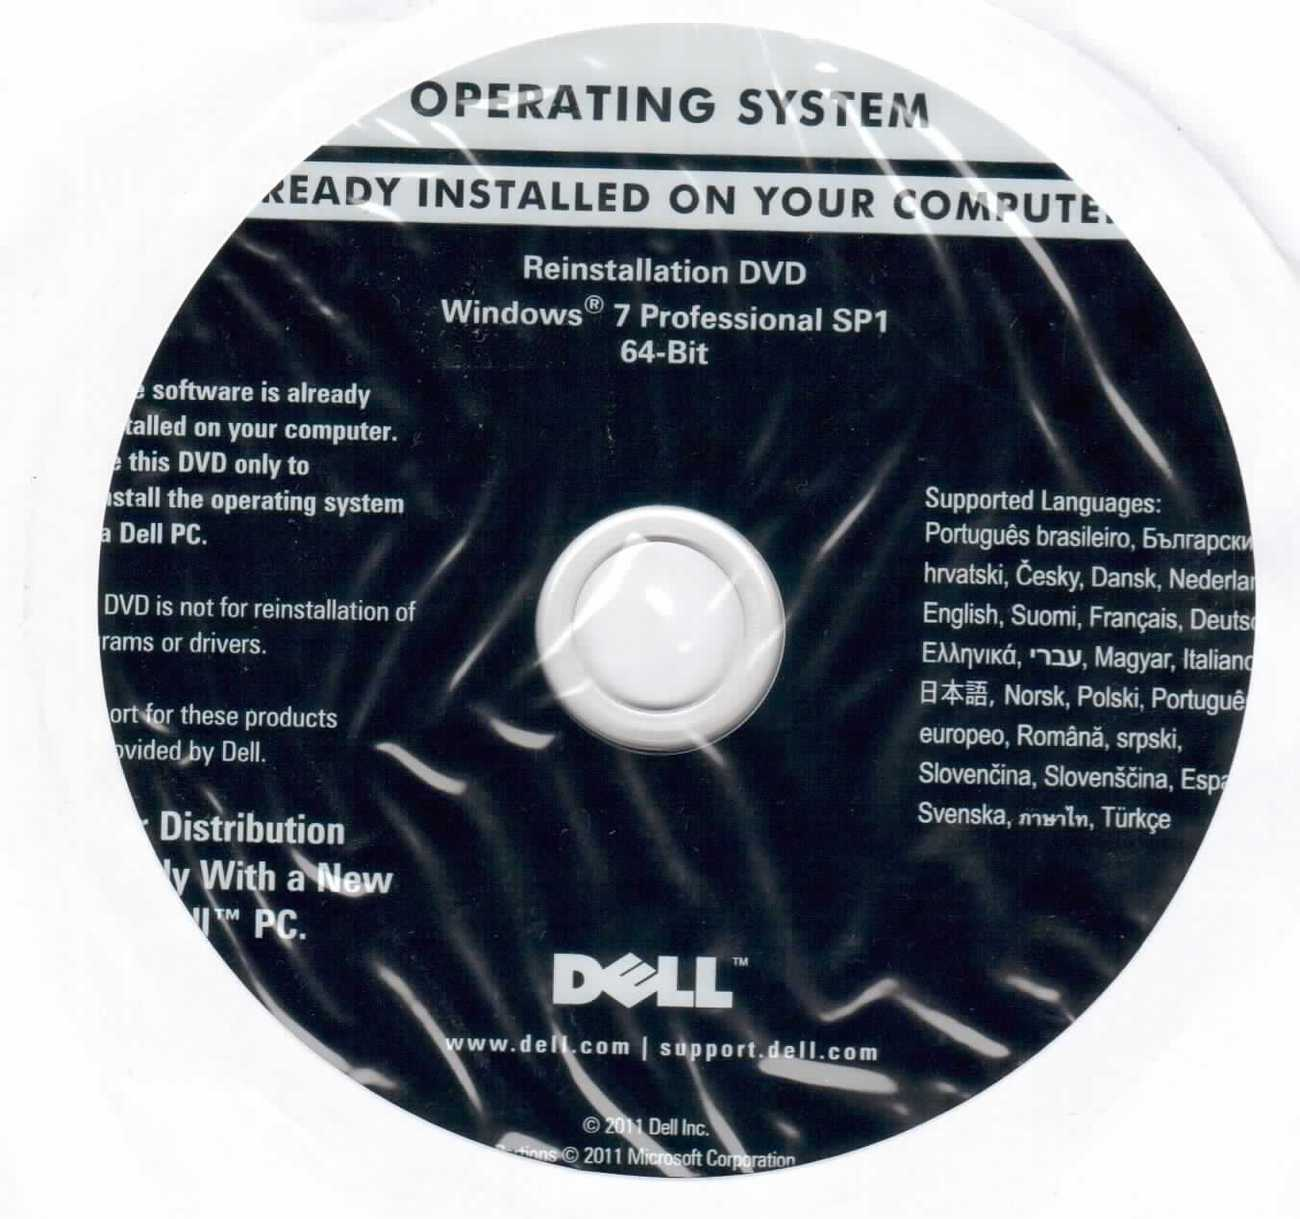 DELL Windows 7 Professional / SP1 64-bit Reinstallation DVD Disc